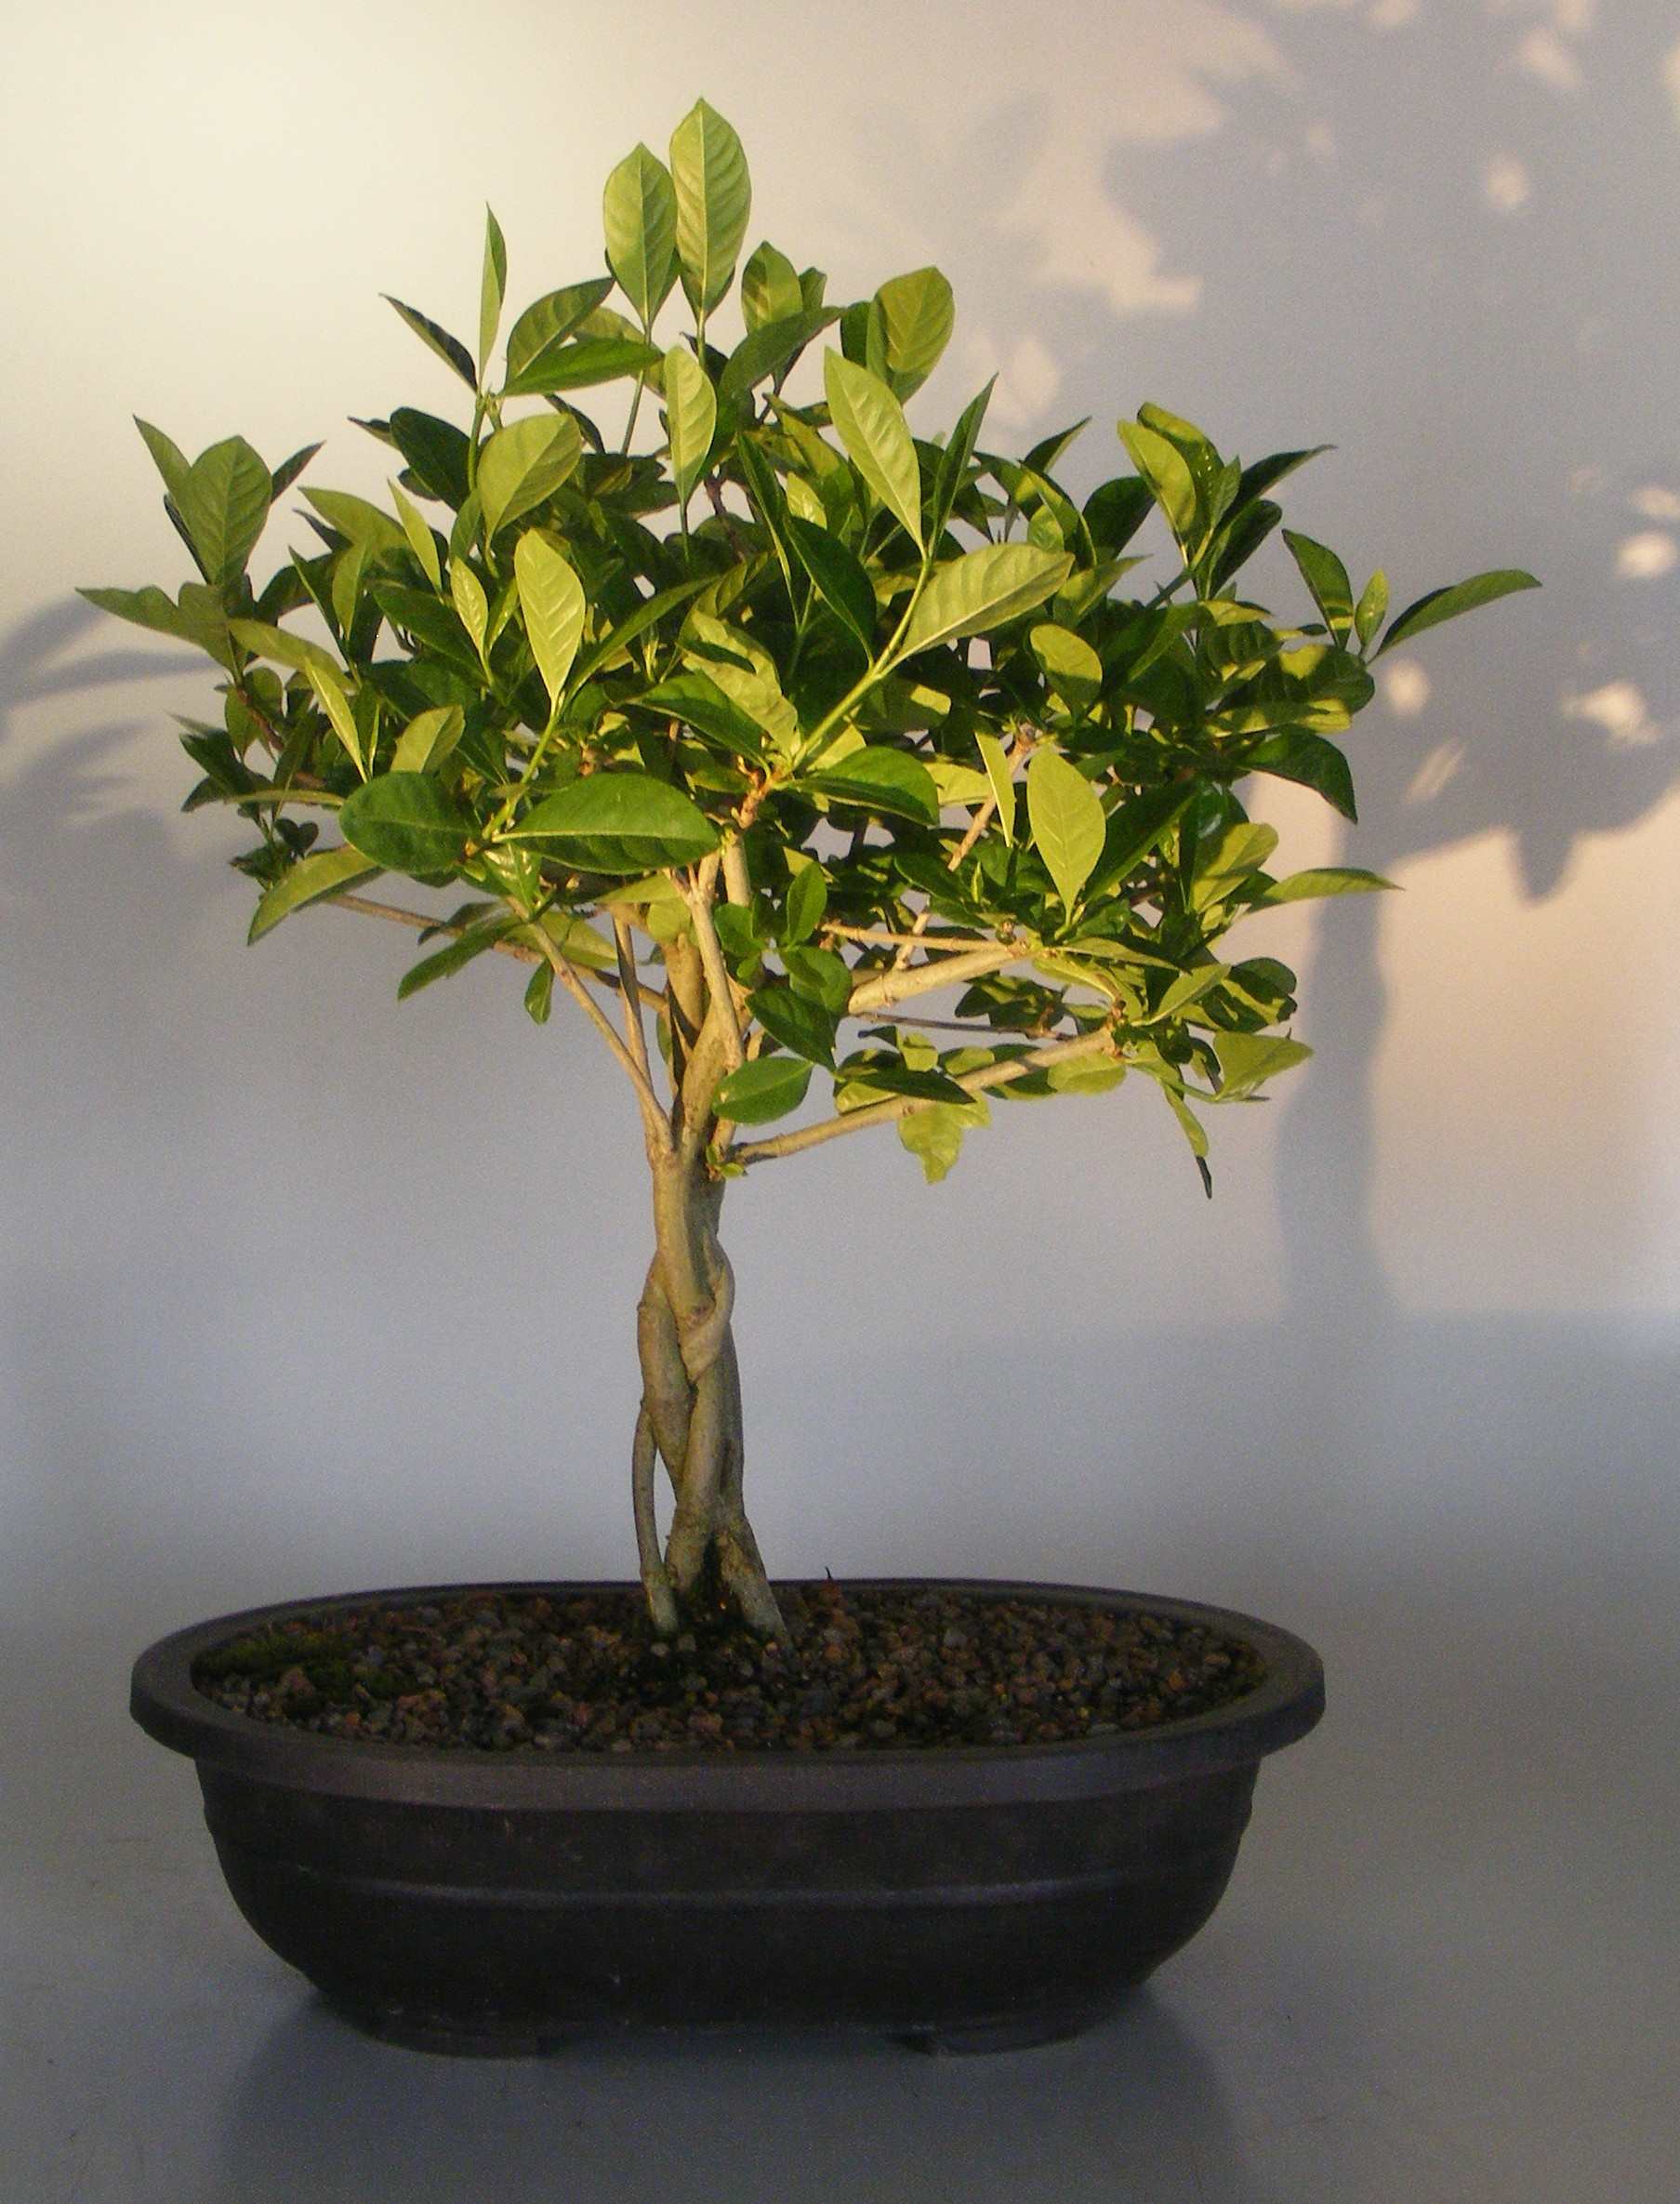 Flowering Gardenia Bonsai Tree Braided Trunk Jasminoides Miami Supreme